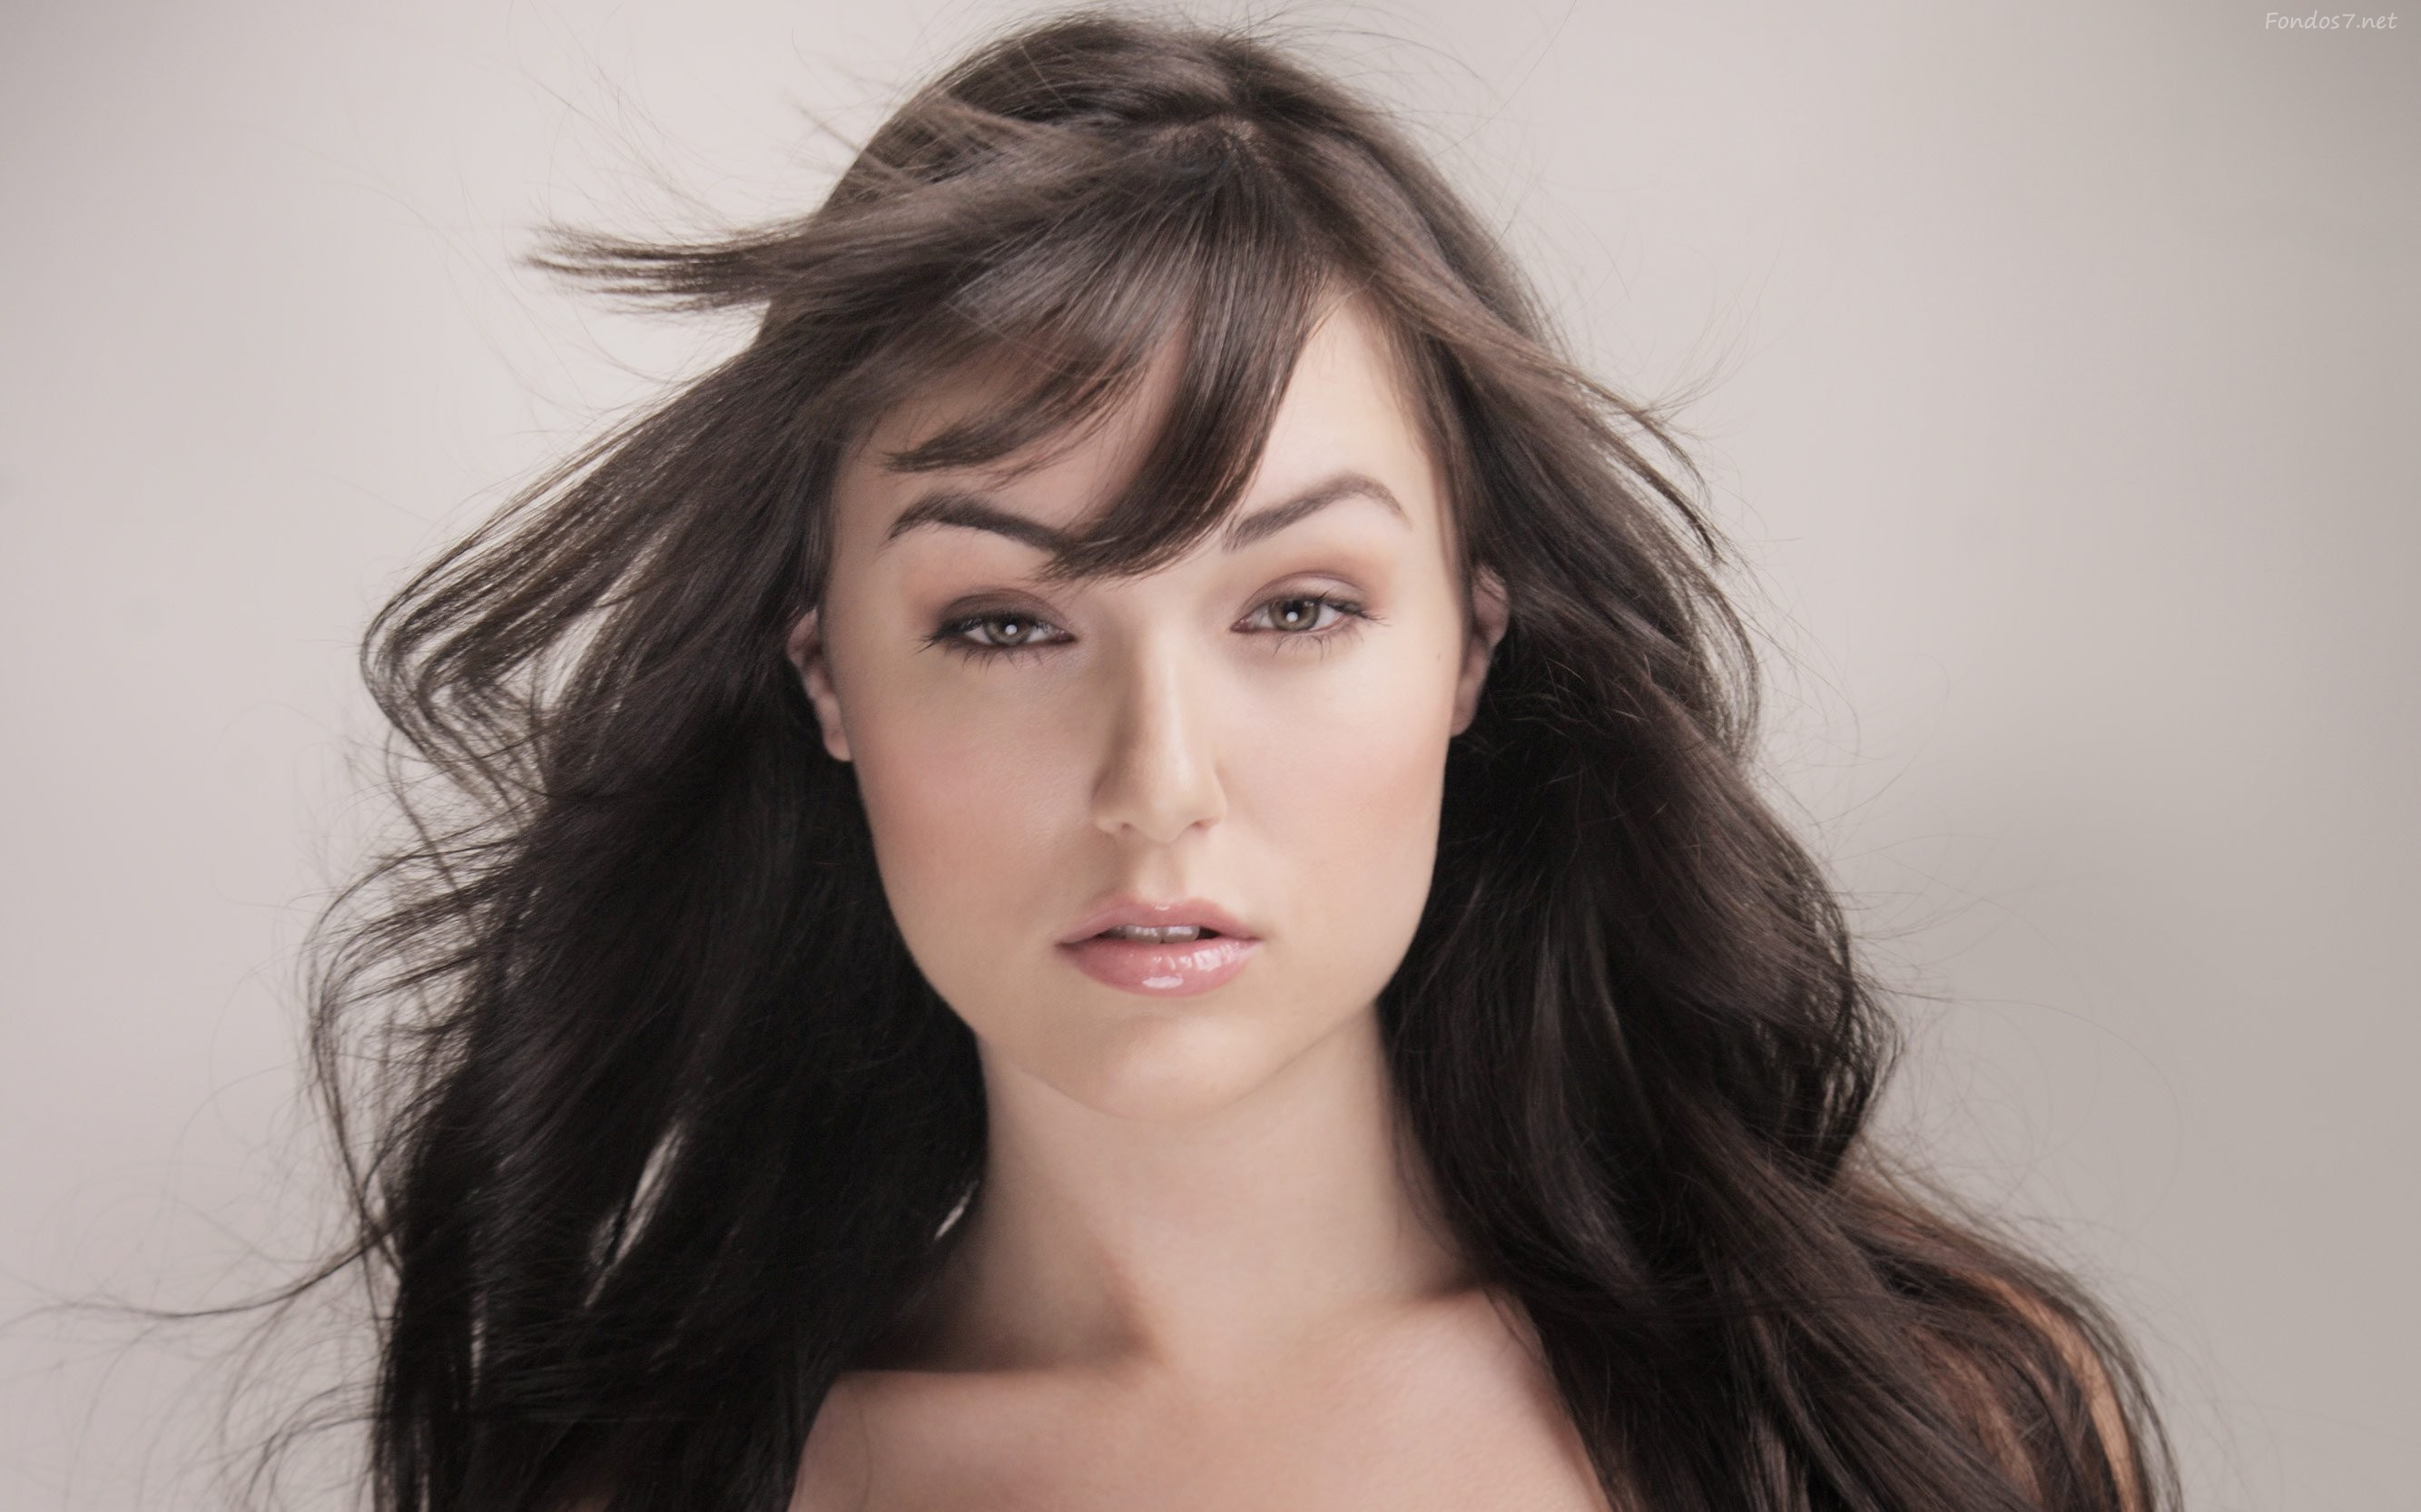 Most Beautiful Sasha Grey HQ Wallpapers | World's Greatest Art Site